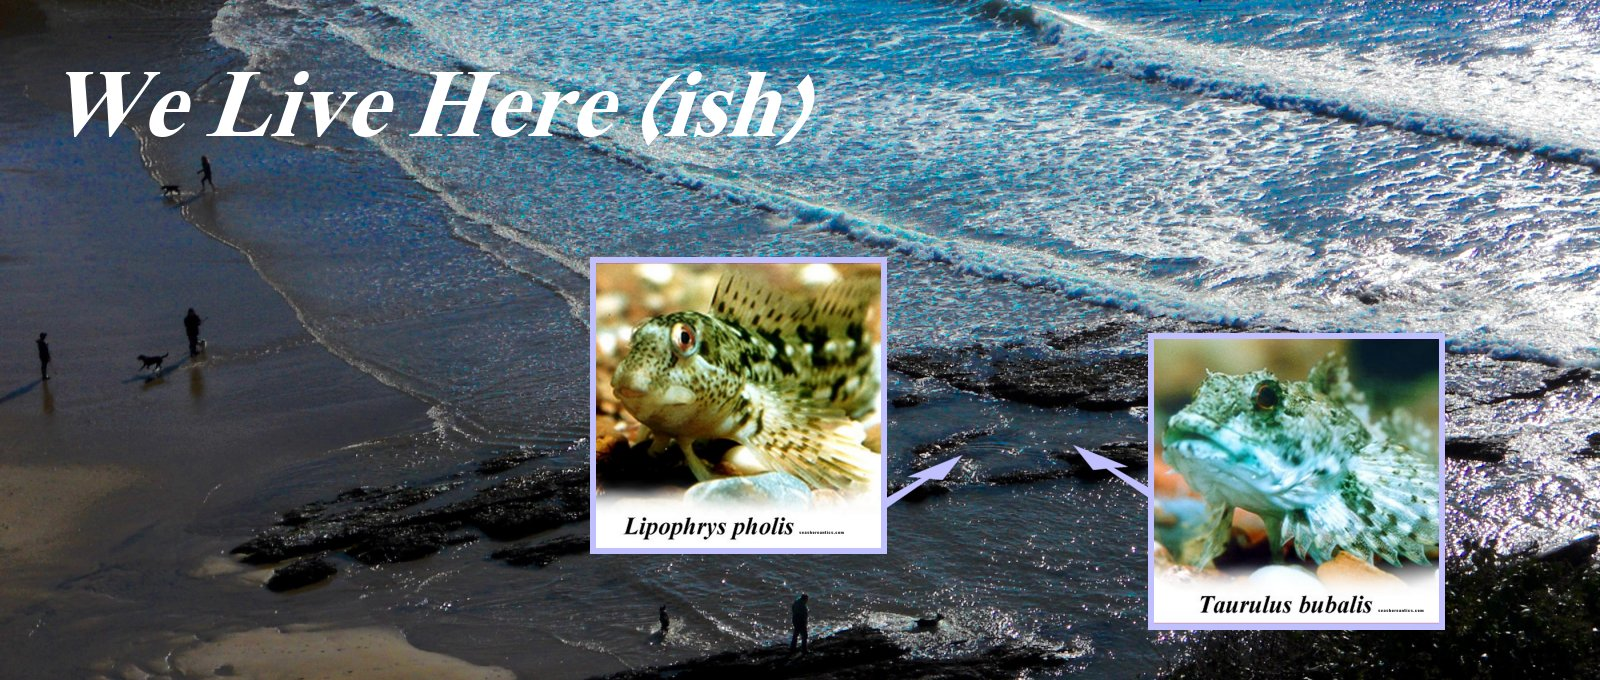 seashore scape with images overlay of blenny and sea scorpion